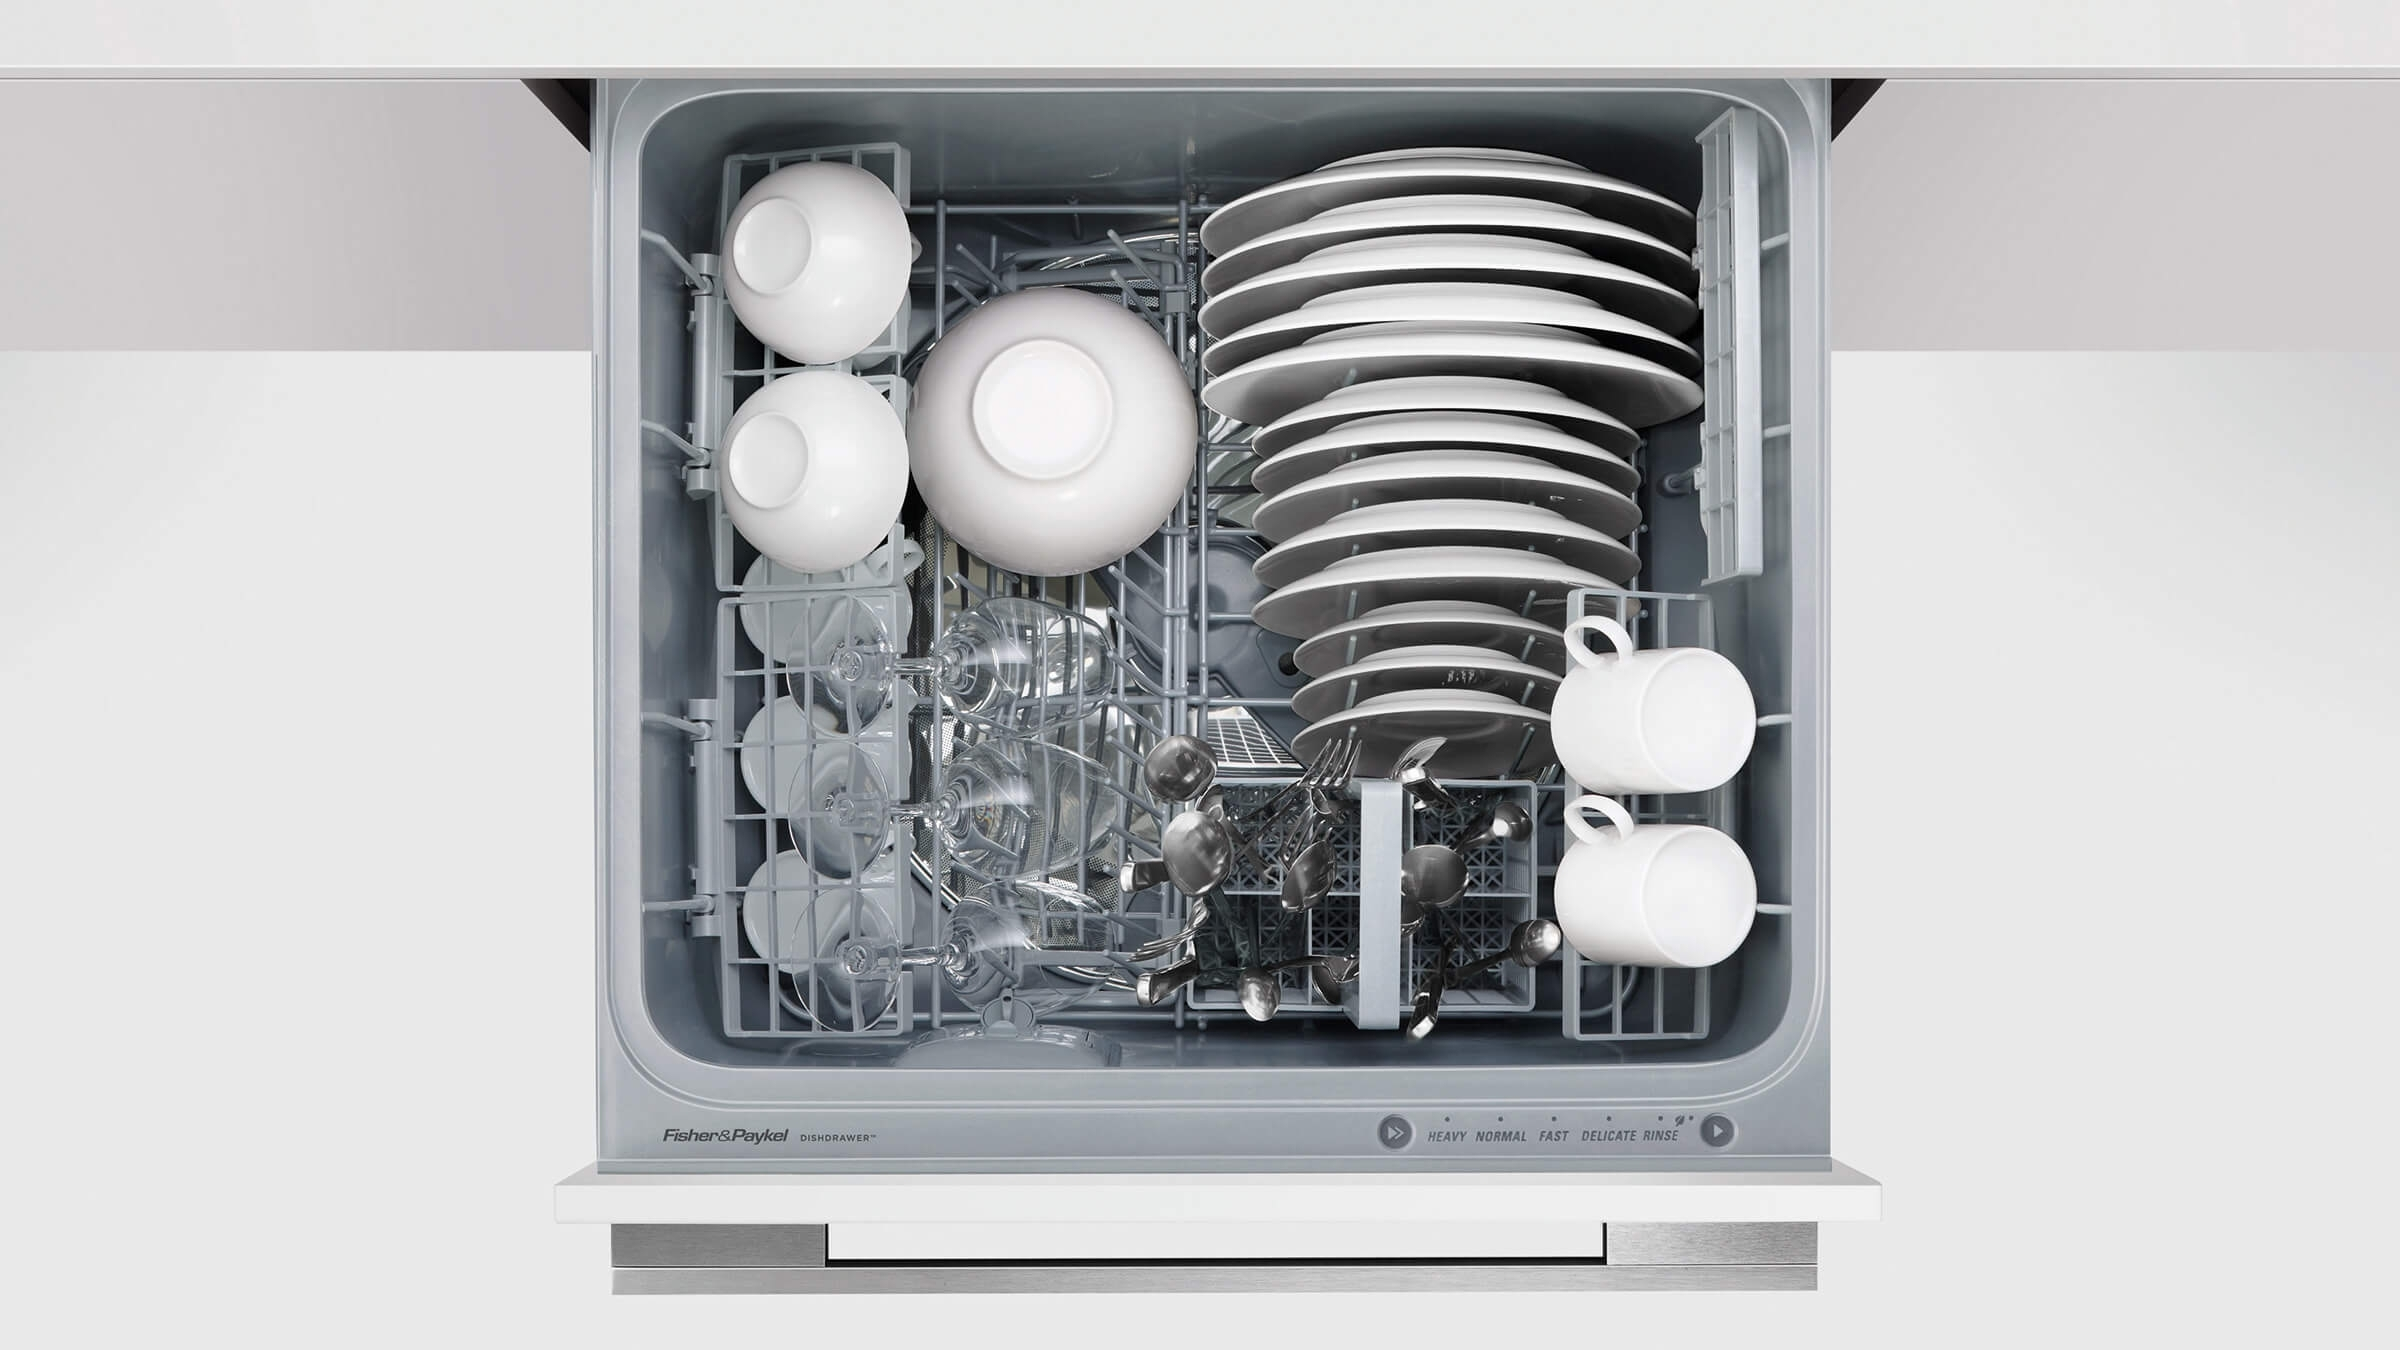 Dd24Di7 - Fisher & Paykel Panel Ready Dishdrawer™ Double Dishwasher with Fisher Paykel Washing Machine Parts Diagram